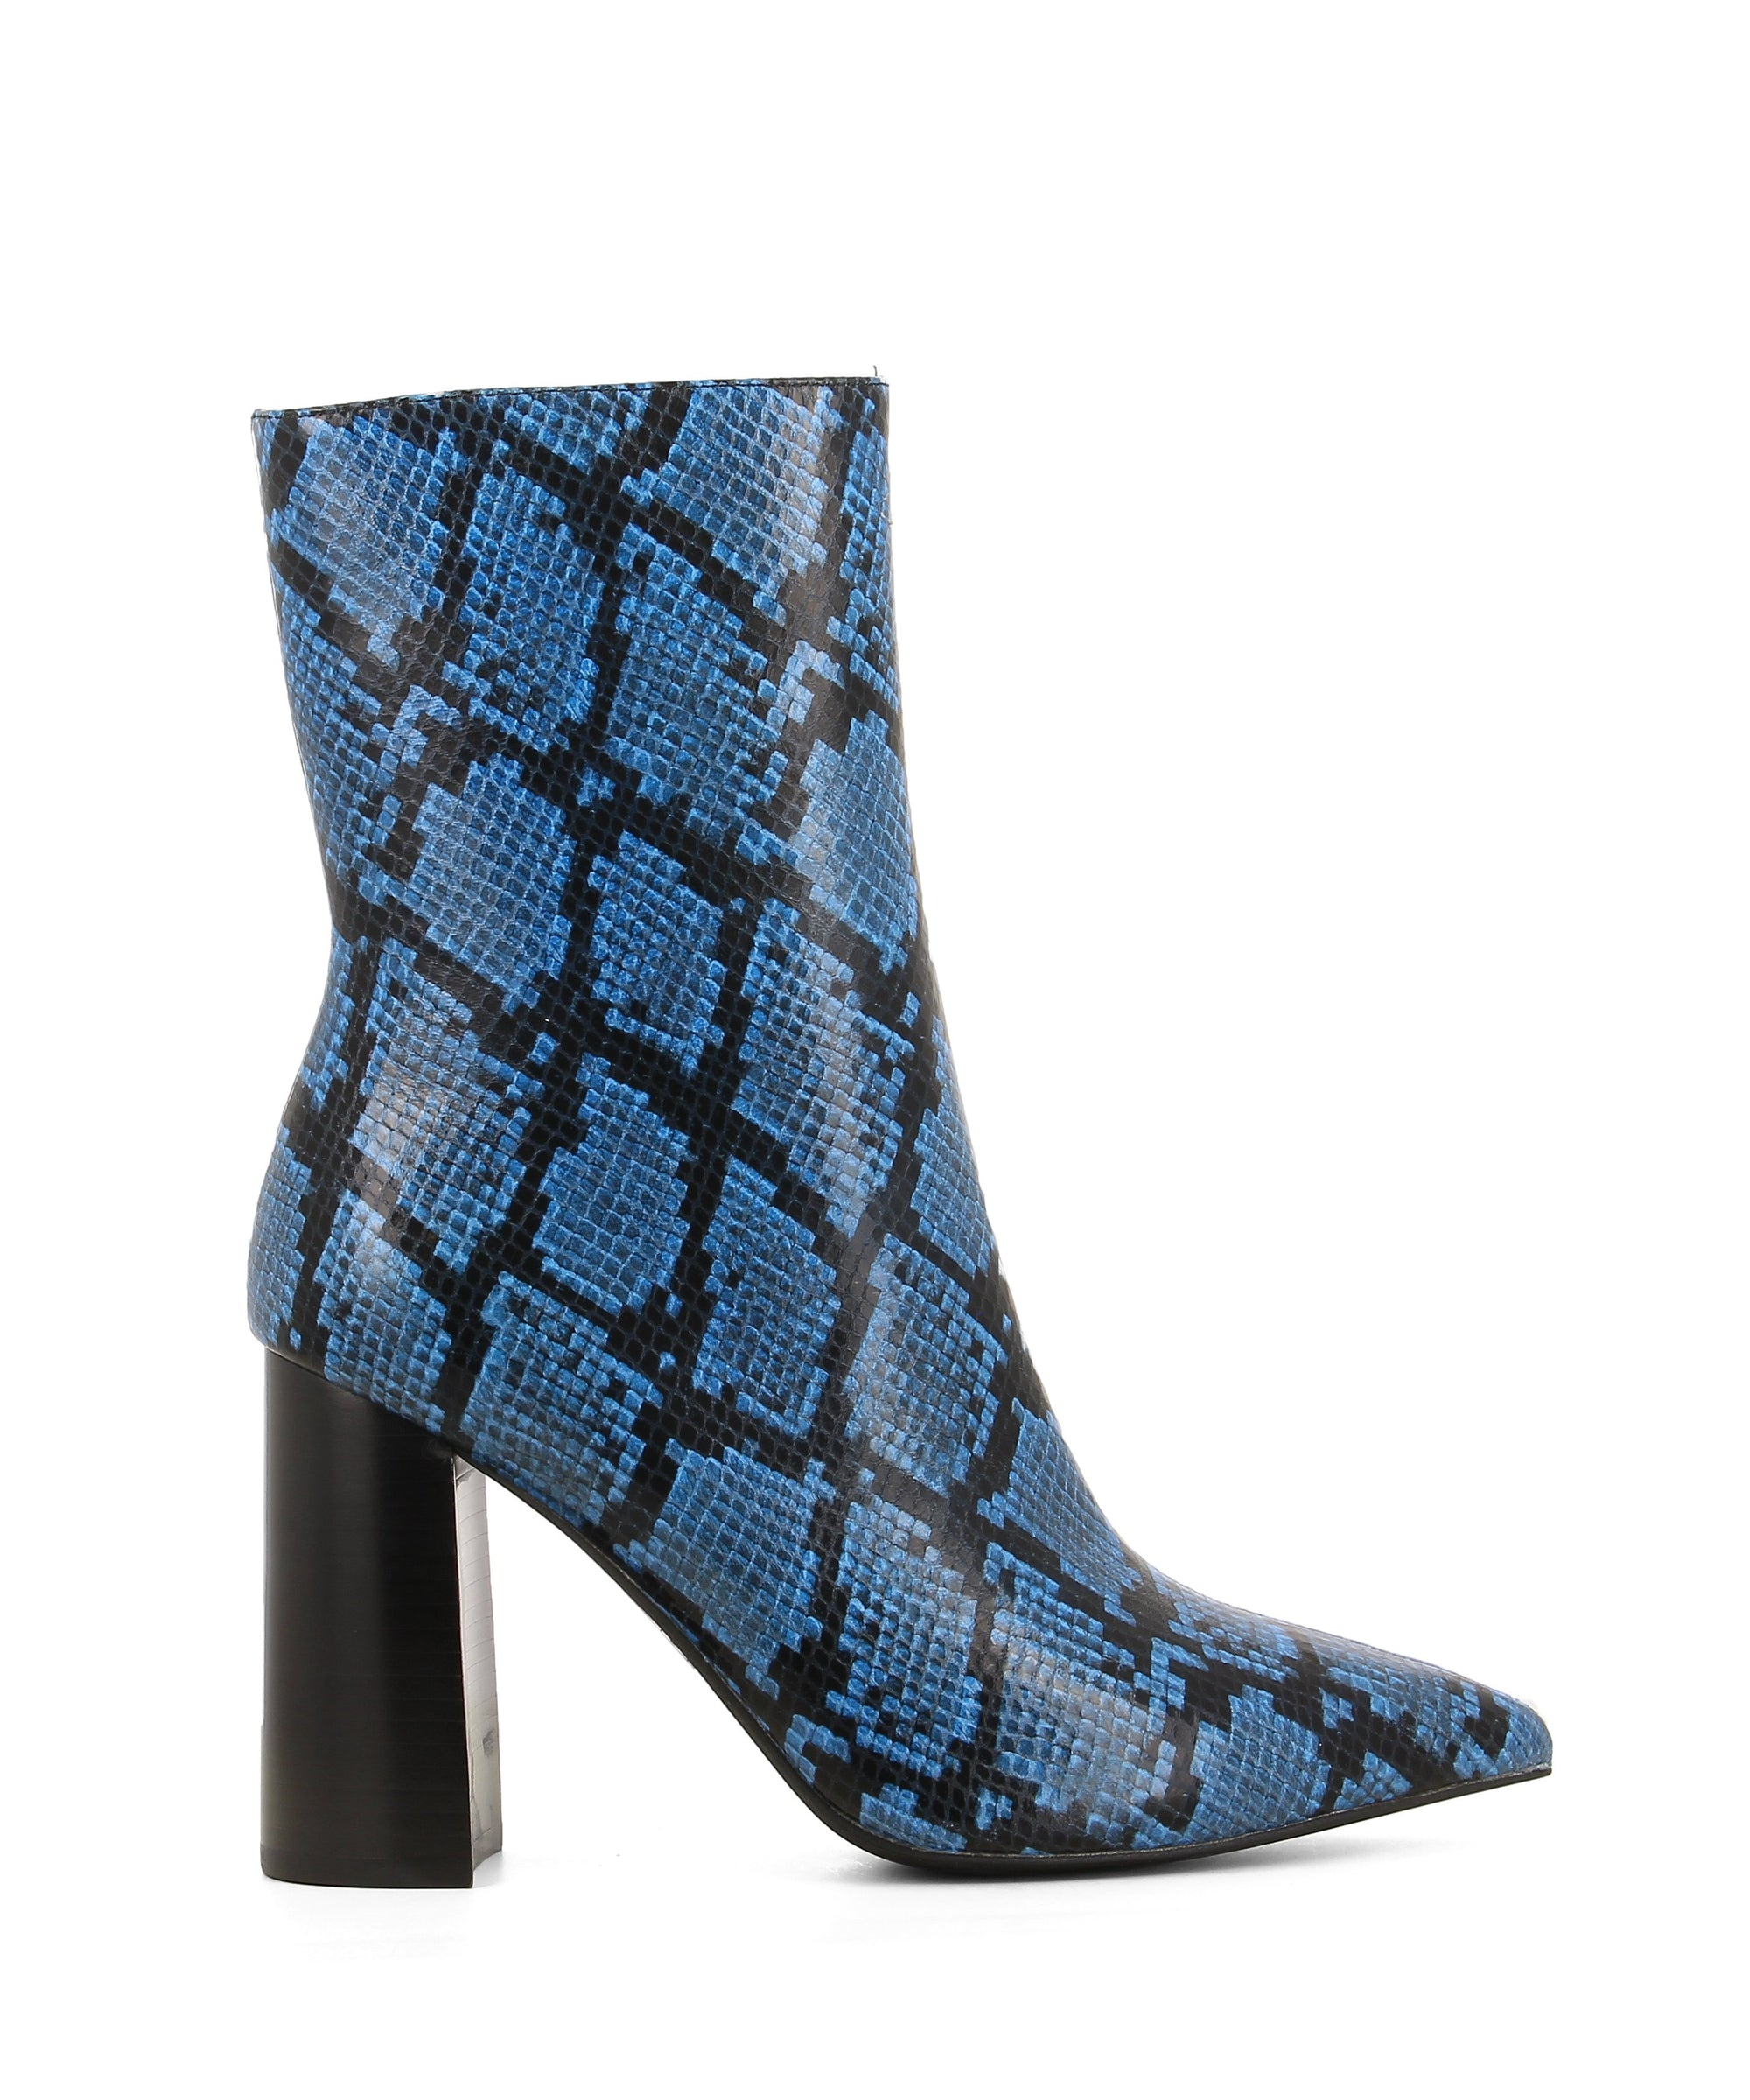 A blue and black snake skin high heel boot that features a 9cm block heel and a pointed toe by Jeffrey Campbell. This style runs true to size.